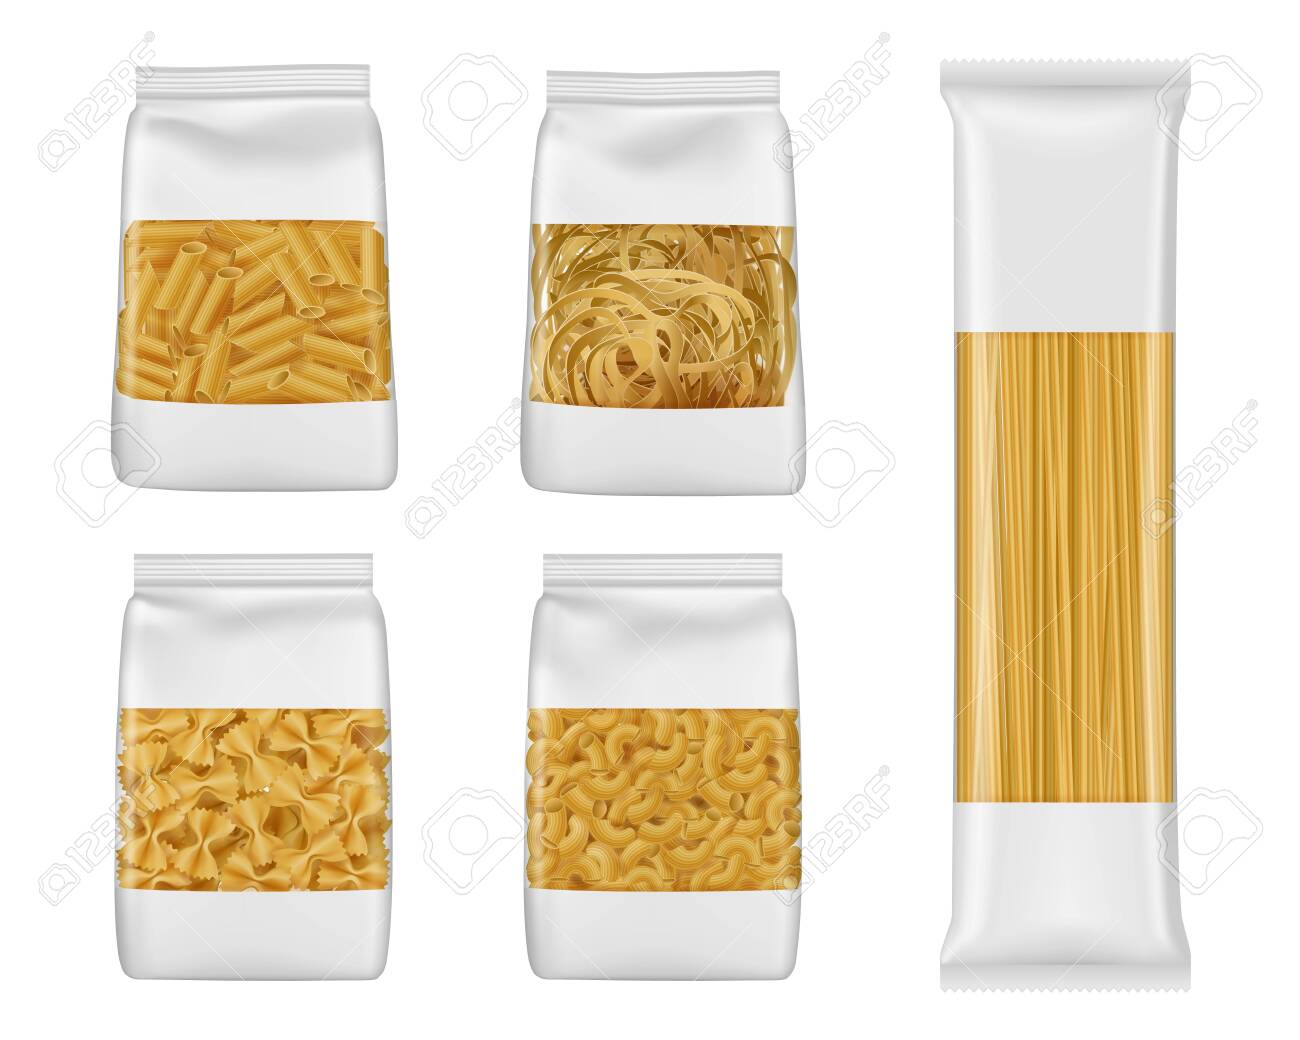 Discover 3 noodles box mockup designs on dribbble. Pasta And Italian Macaroni Food Package 3d Vector Mockups Of Foil And Plastic Bags With Windows Realistic Templates Of Spaghetti Penne And Farfalle Tagliatelle And Elbow Vermicelli Packaging Royalty Free Cliparts Vectors